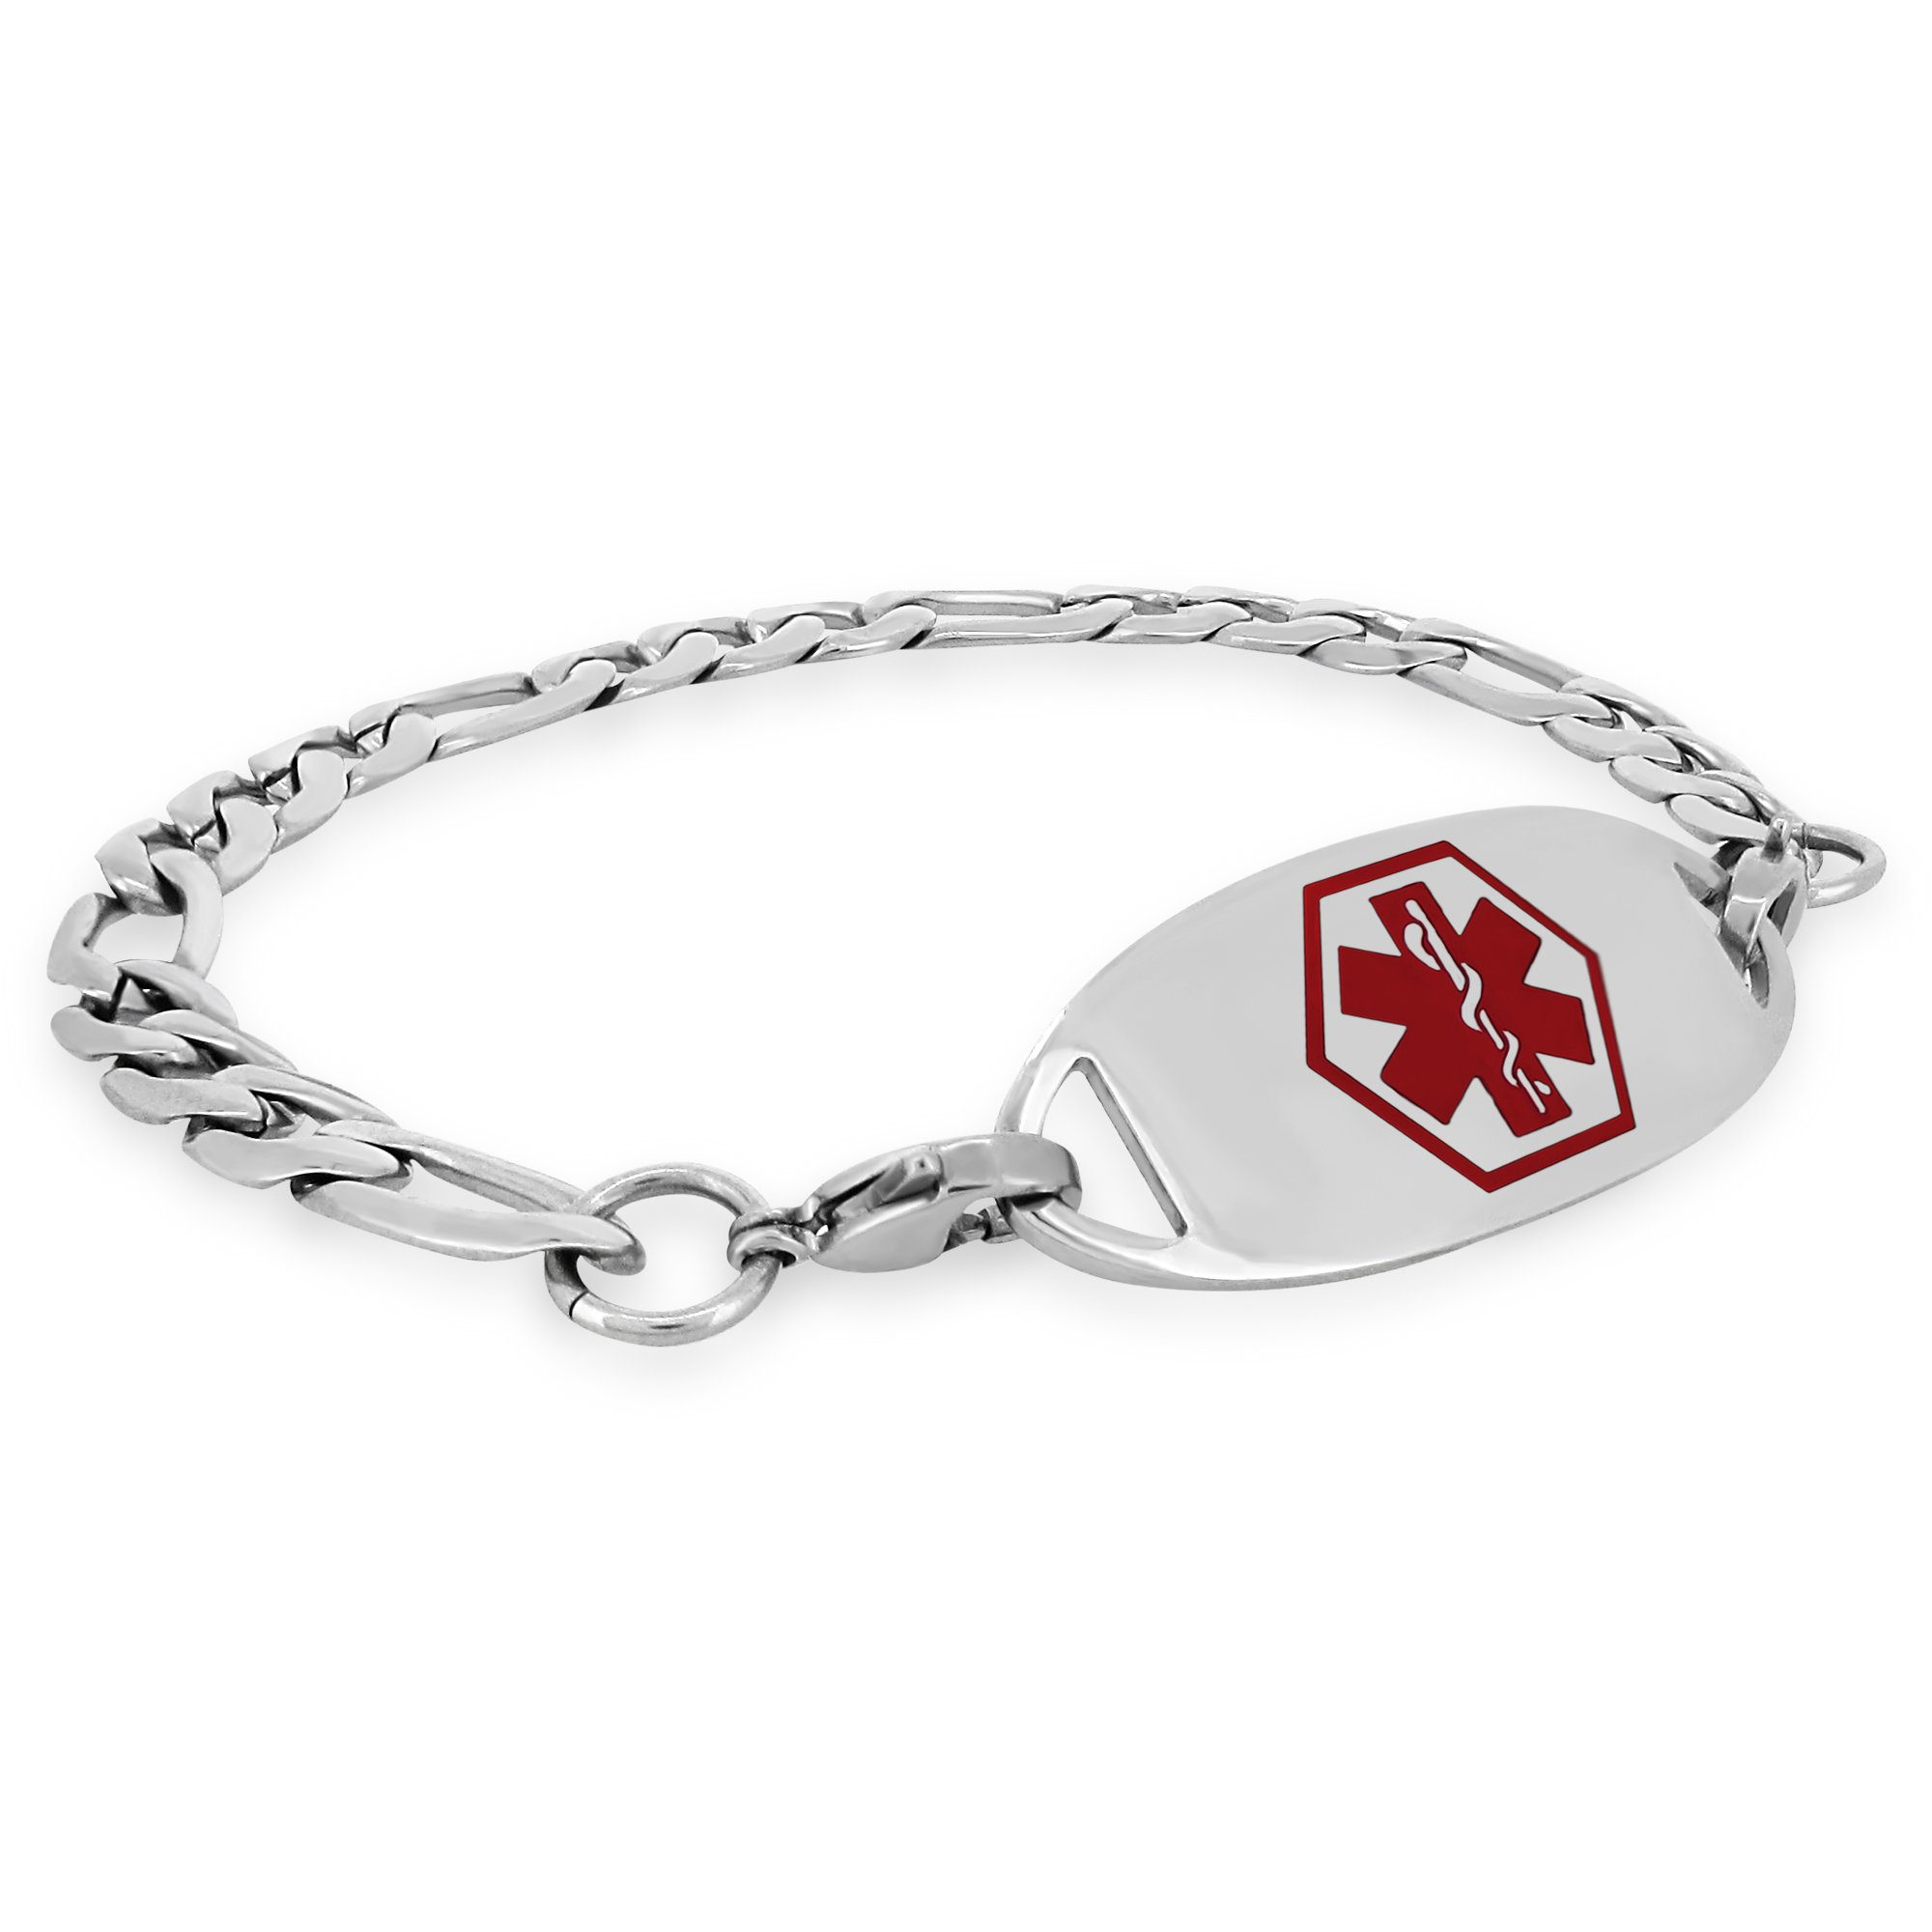 MedicEngraved Custom 316L St. Steel Medical ID Bracelet with Red Enamel Tag Engraving Included 8in